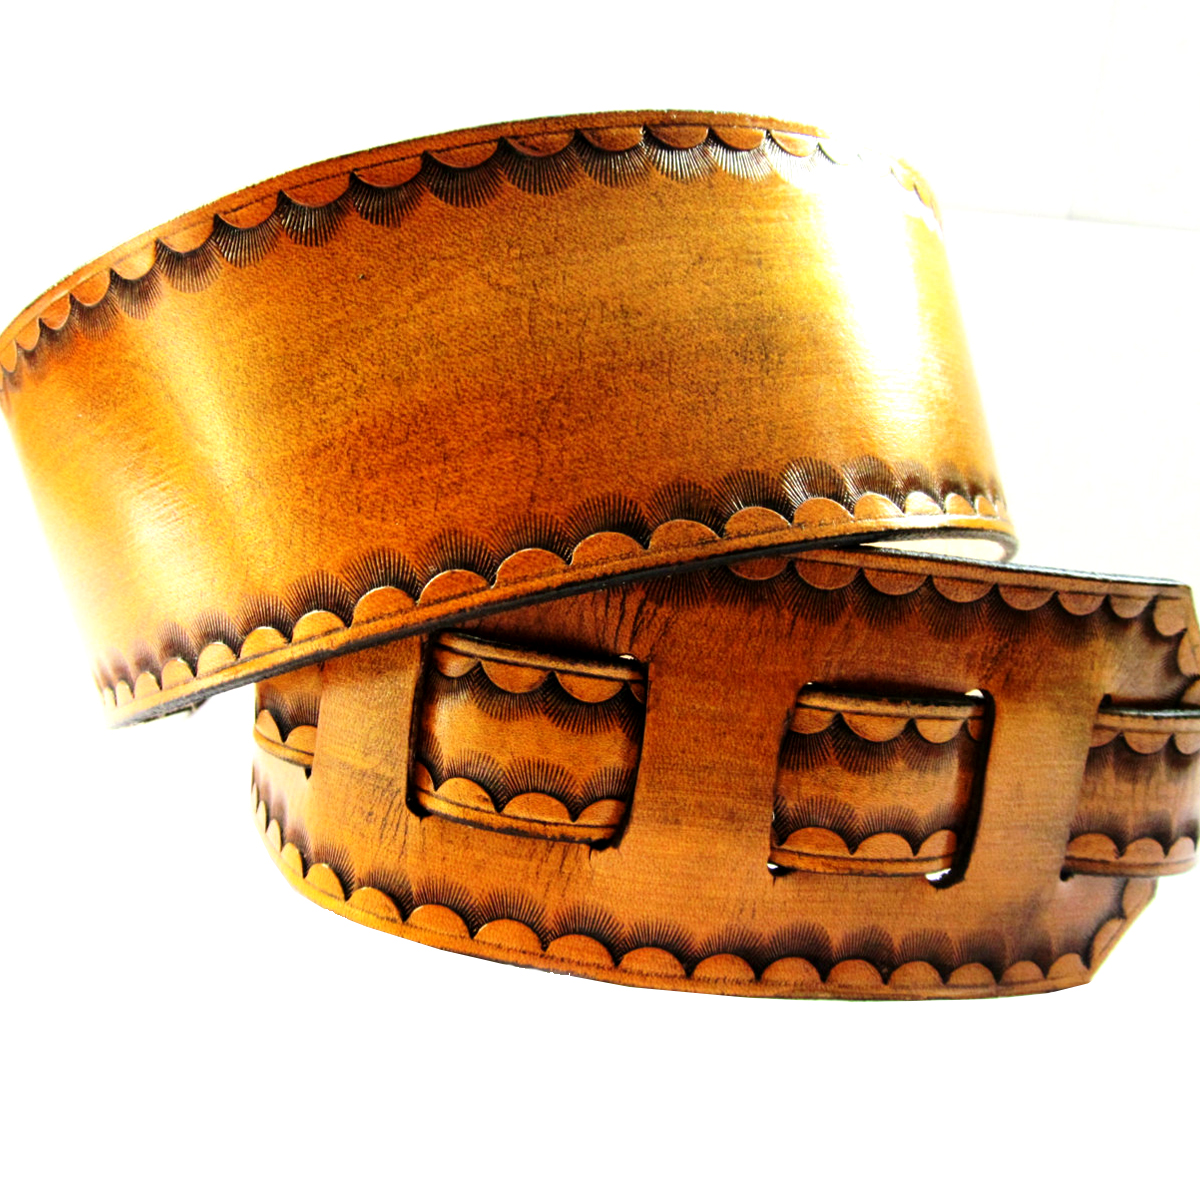 tan-leather-guitar-strap-scallop-border-the-leather-smithy_1